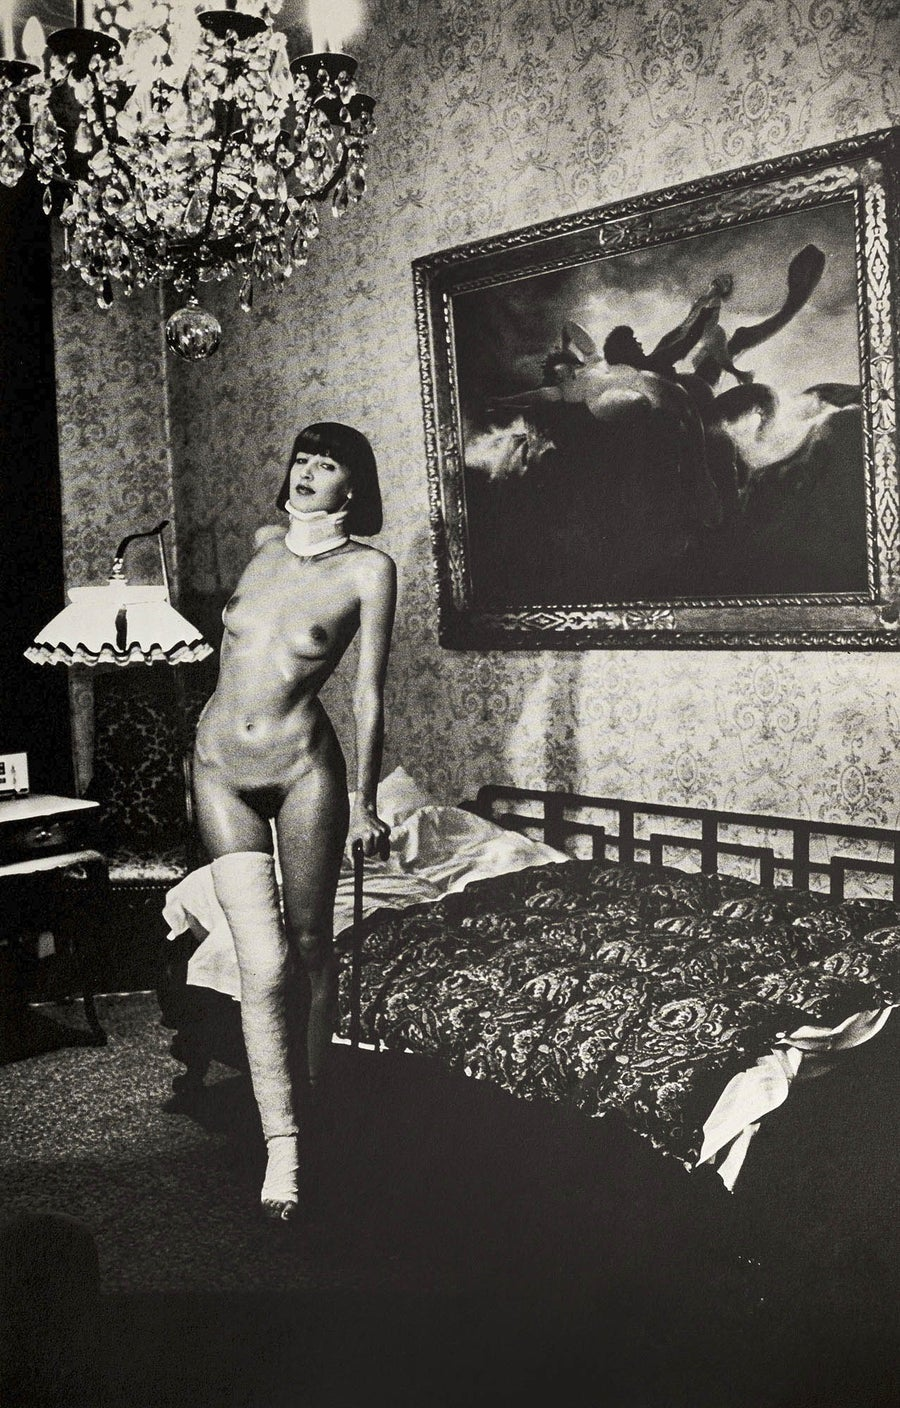 Image of Helmut Newton, Jenny Kapitän - Pension Dorian, Berlin 1977